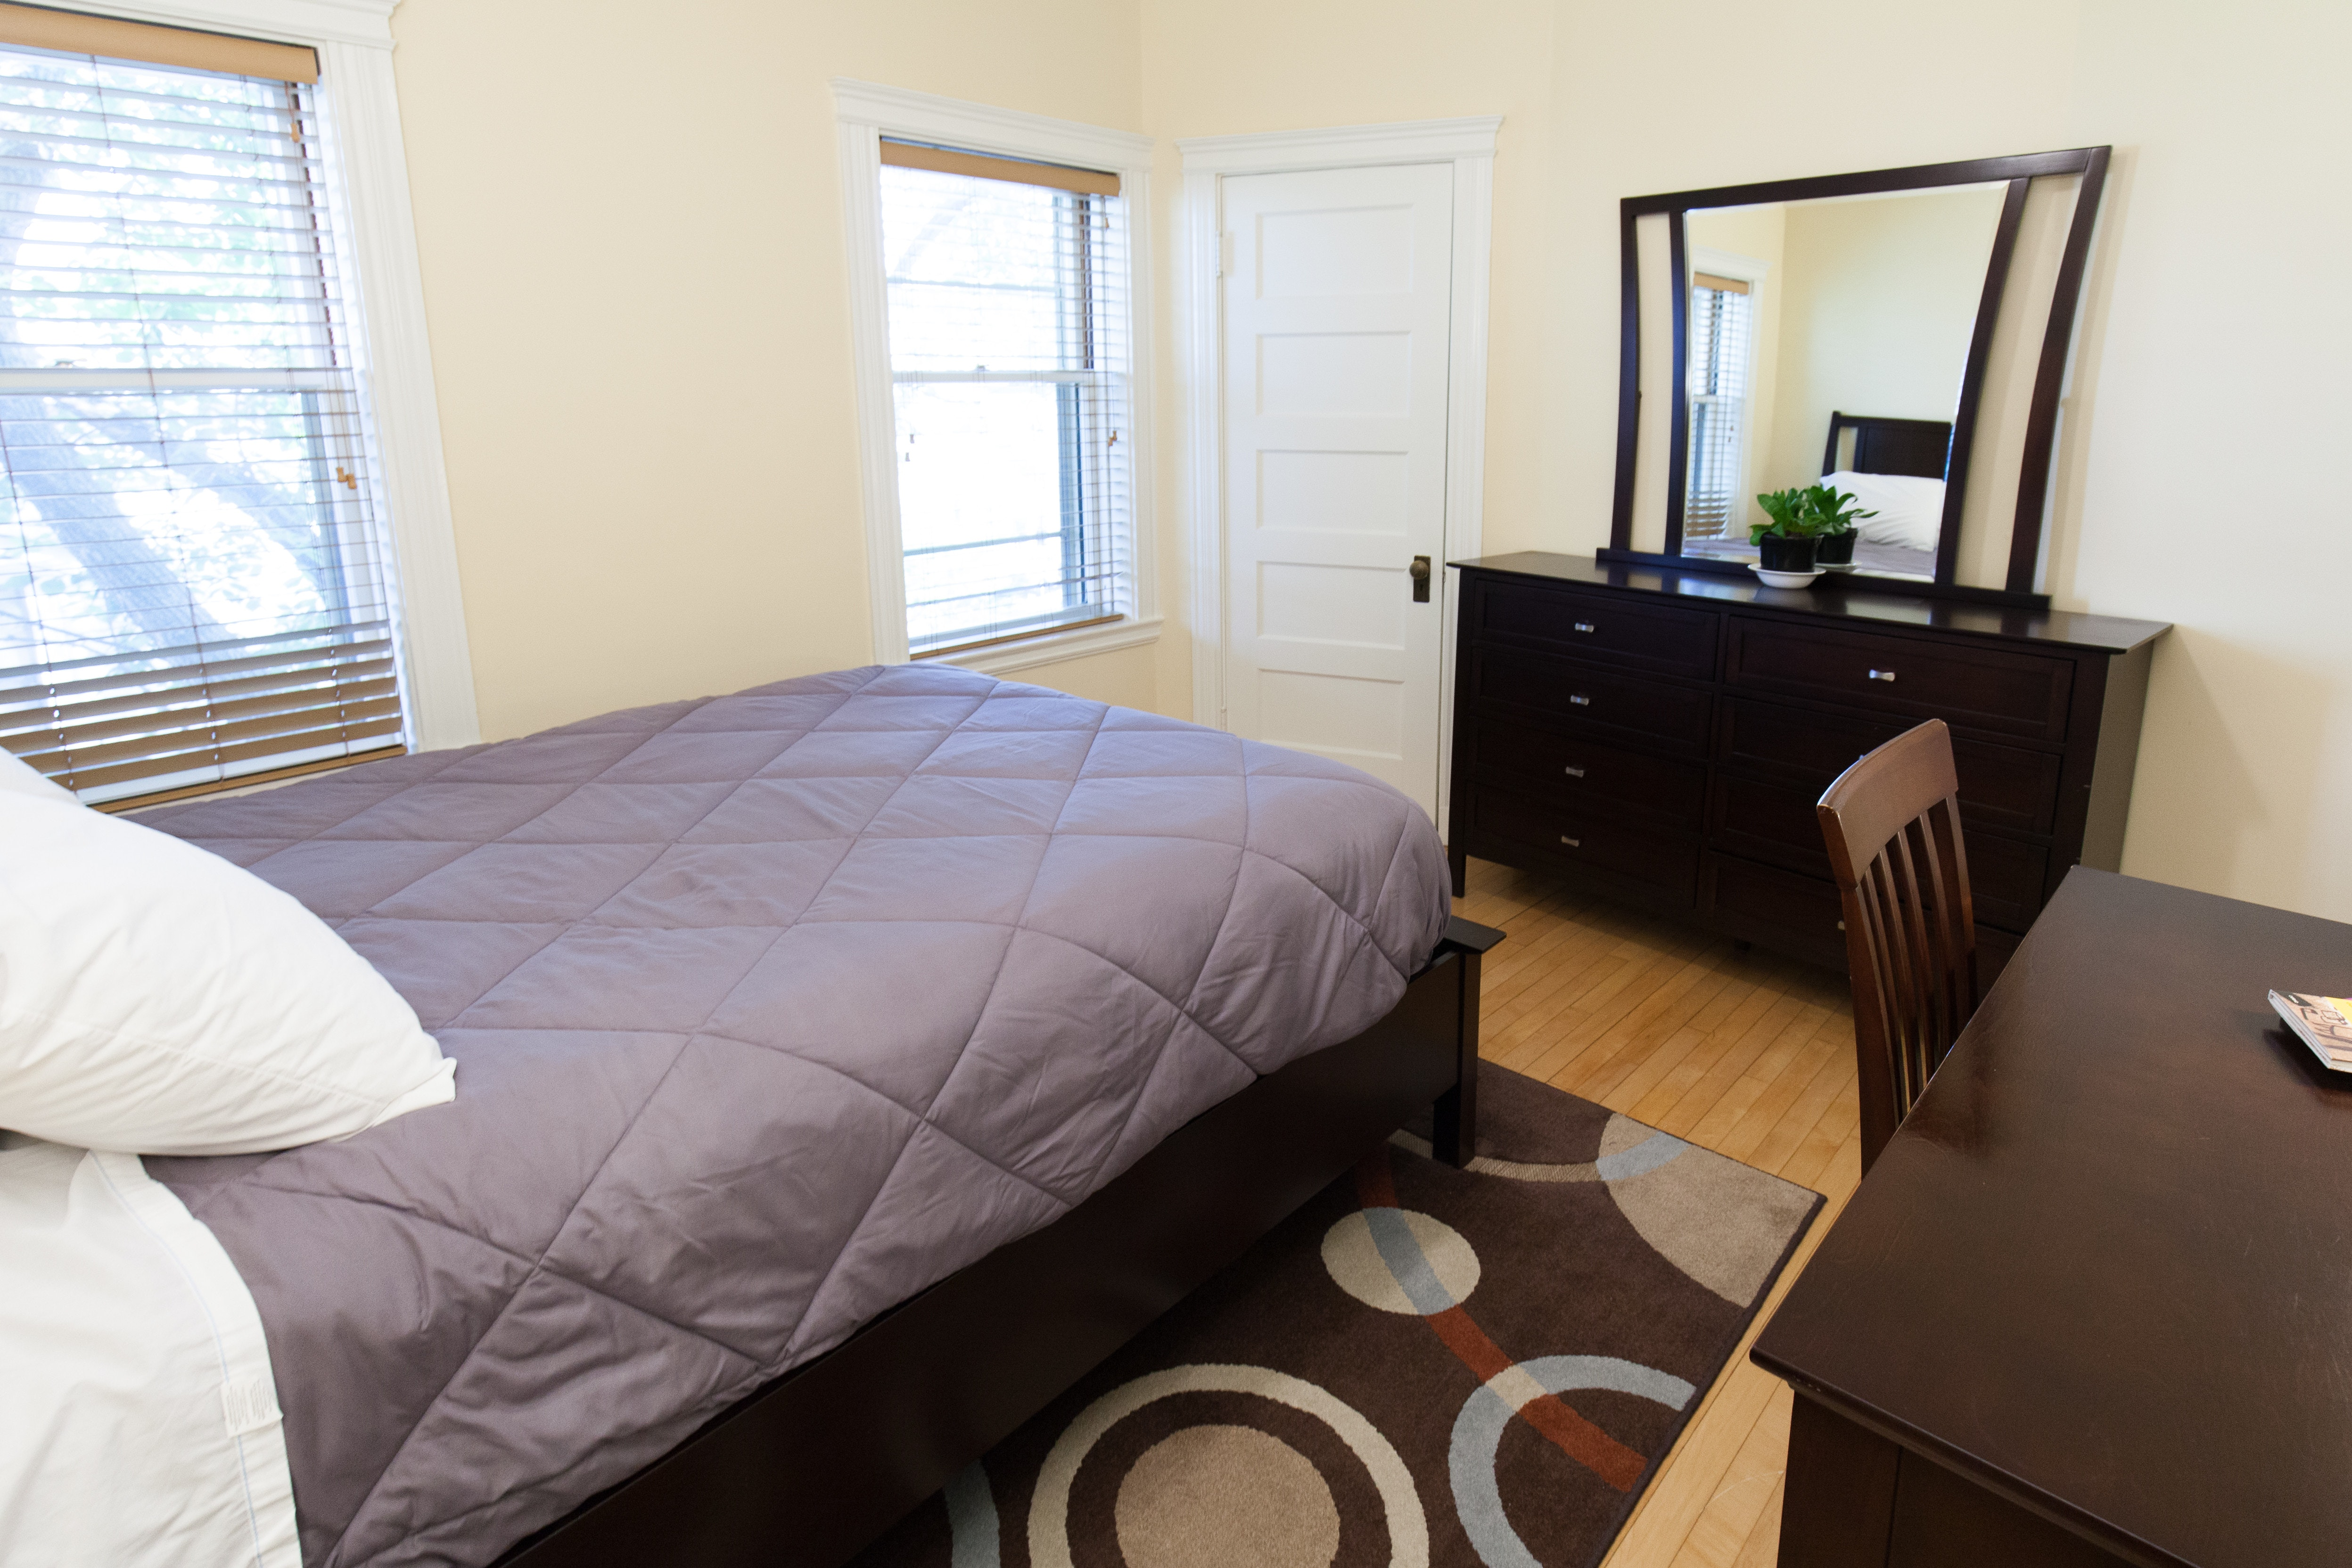 Bedroom with furnishings in 83 Brattle Street one bedroom apartment